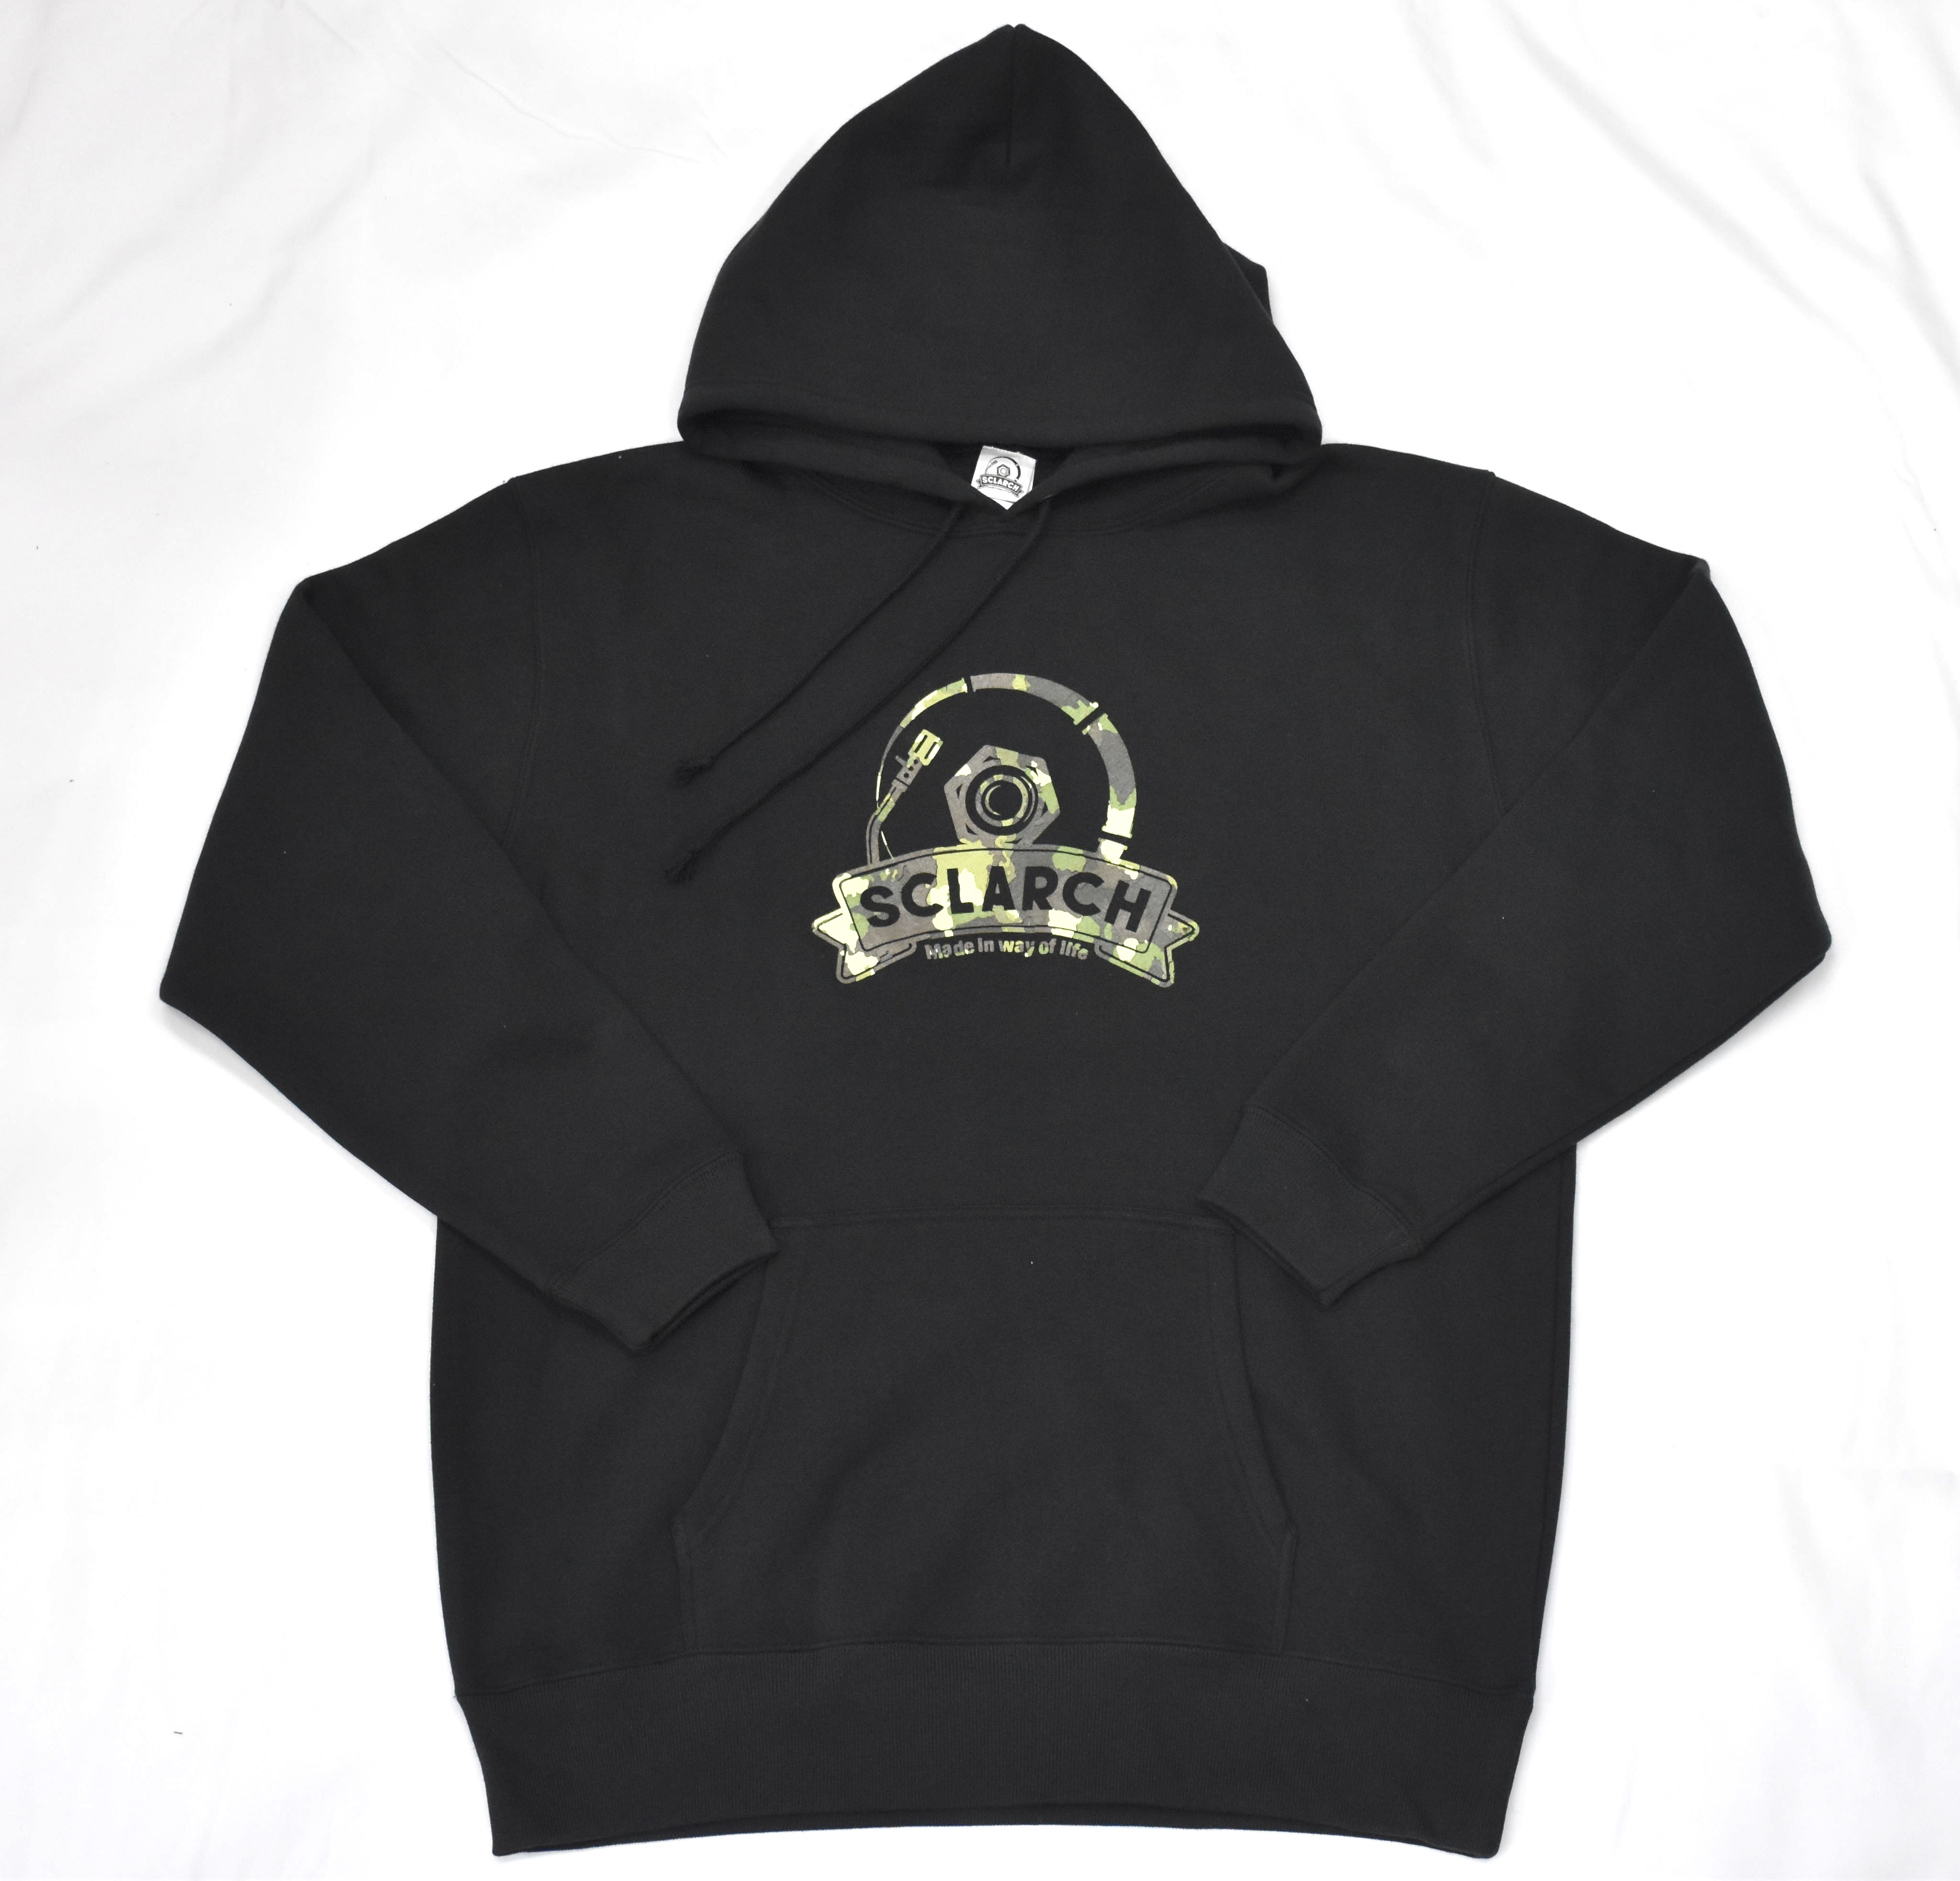 SCLARCH_CLASSIC_LOGO_HOODIE_2020_BLACK